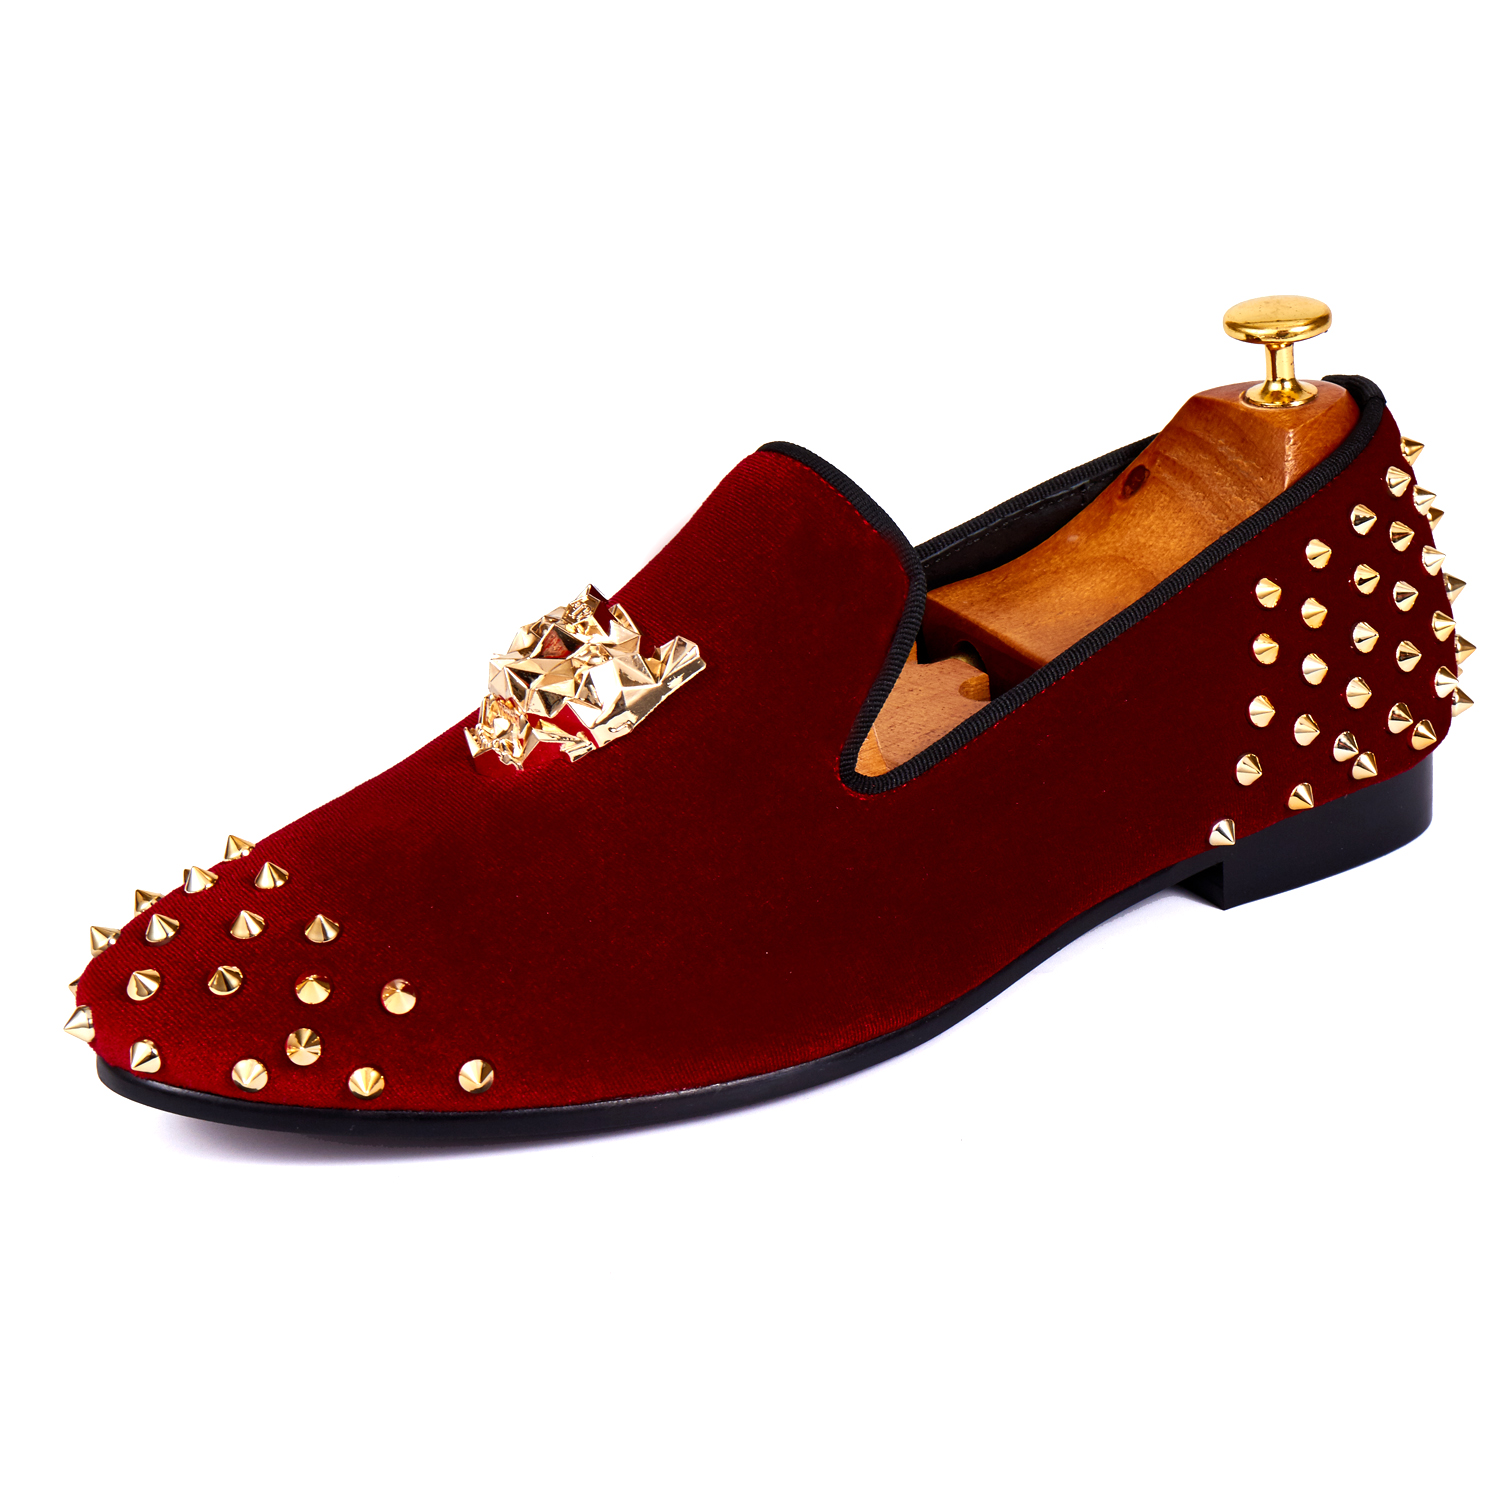 Harpelunde Mens Dress Shoes Rivetti Red Velvet Loafer Animal Buckle Flats Size 7-14